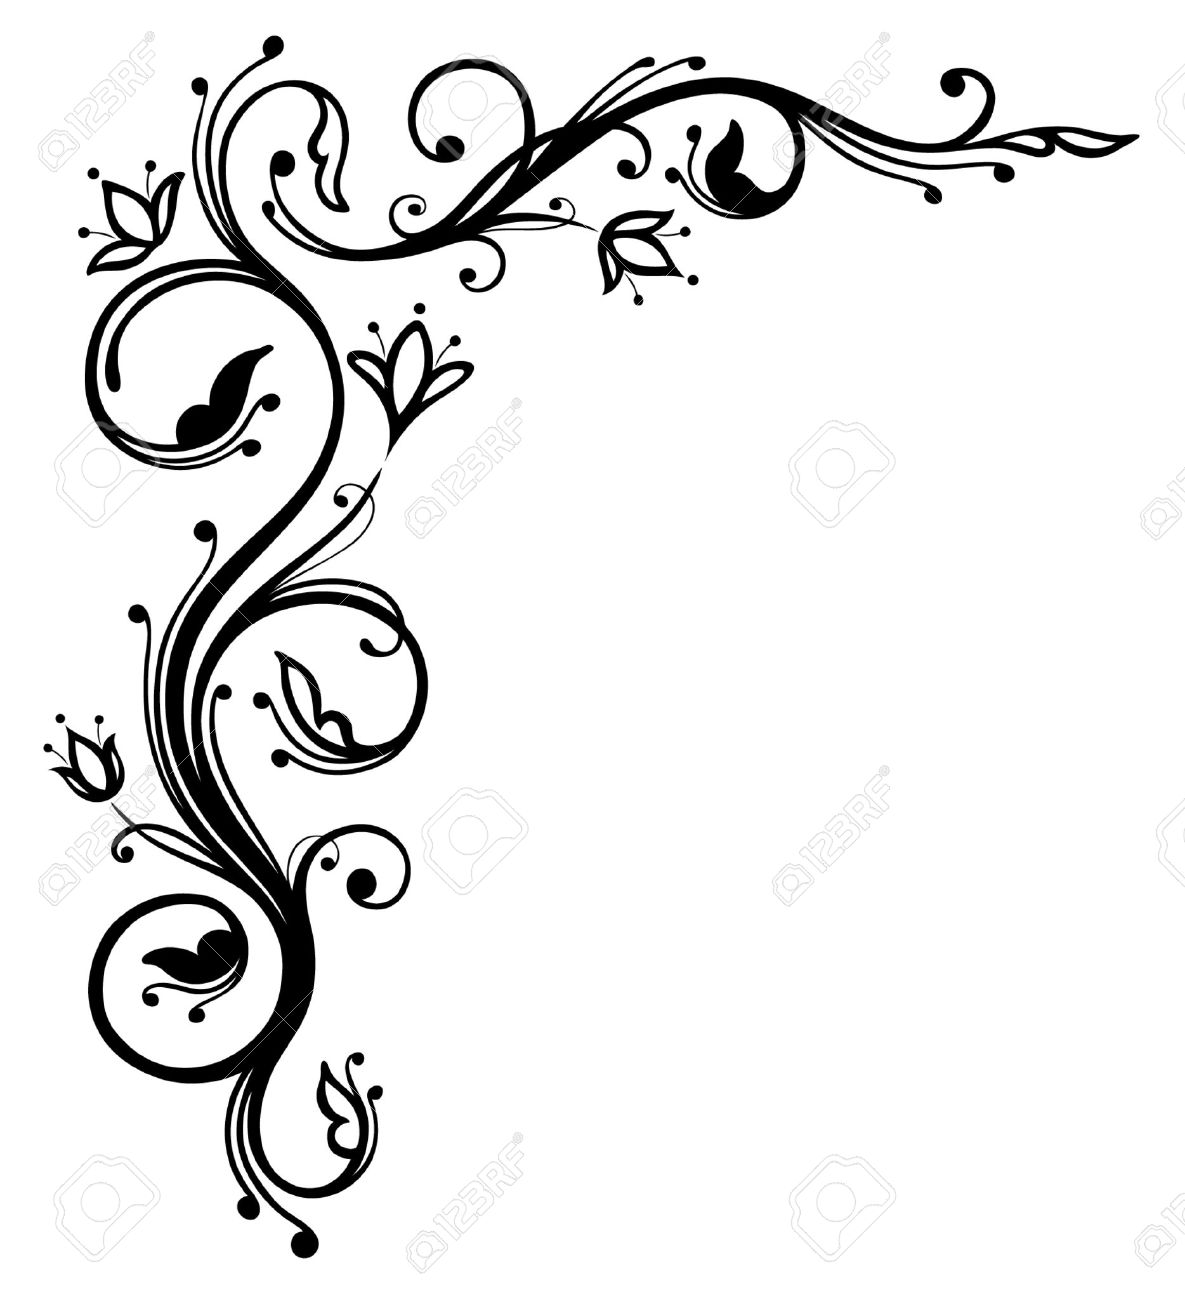 Flower Vine Line Drawing : Vine line cliparts free download best